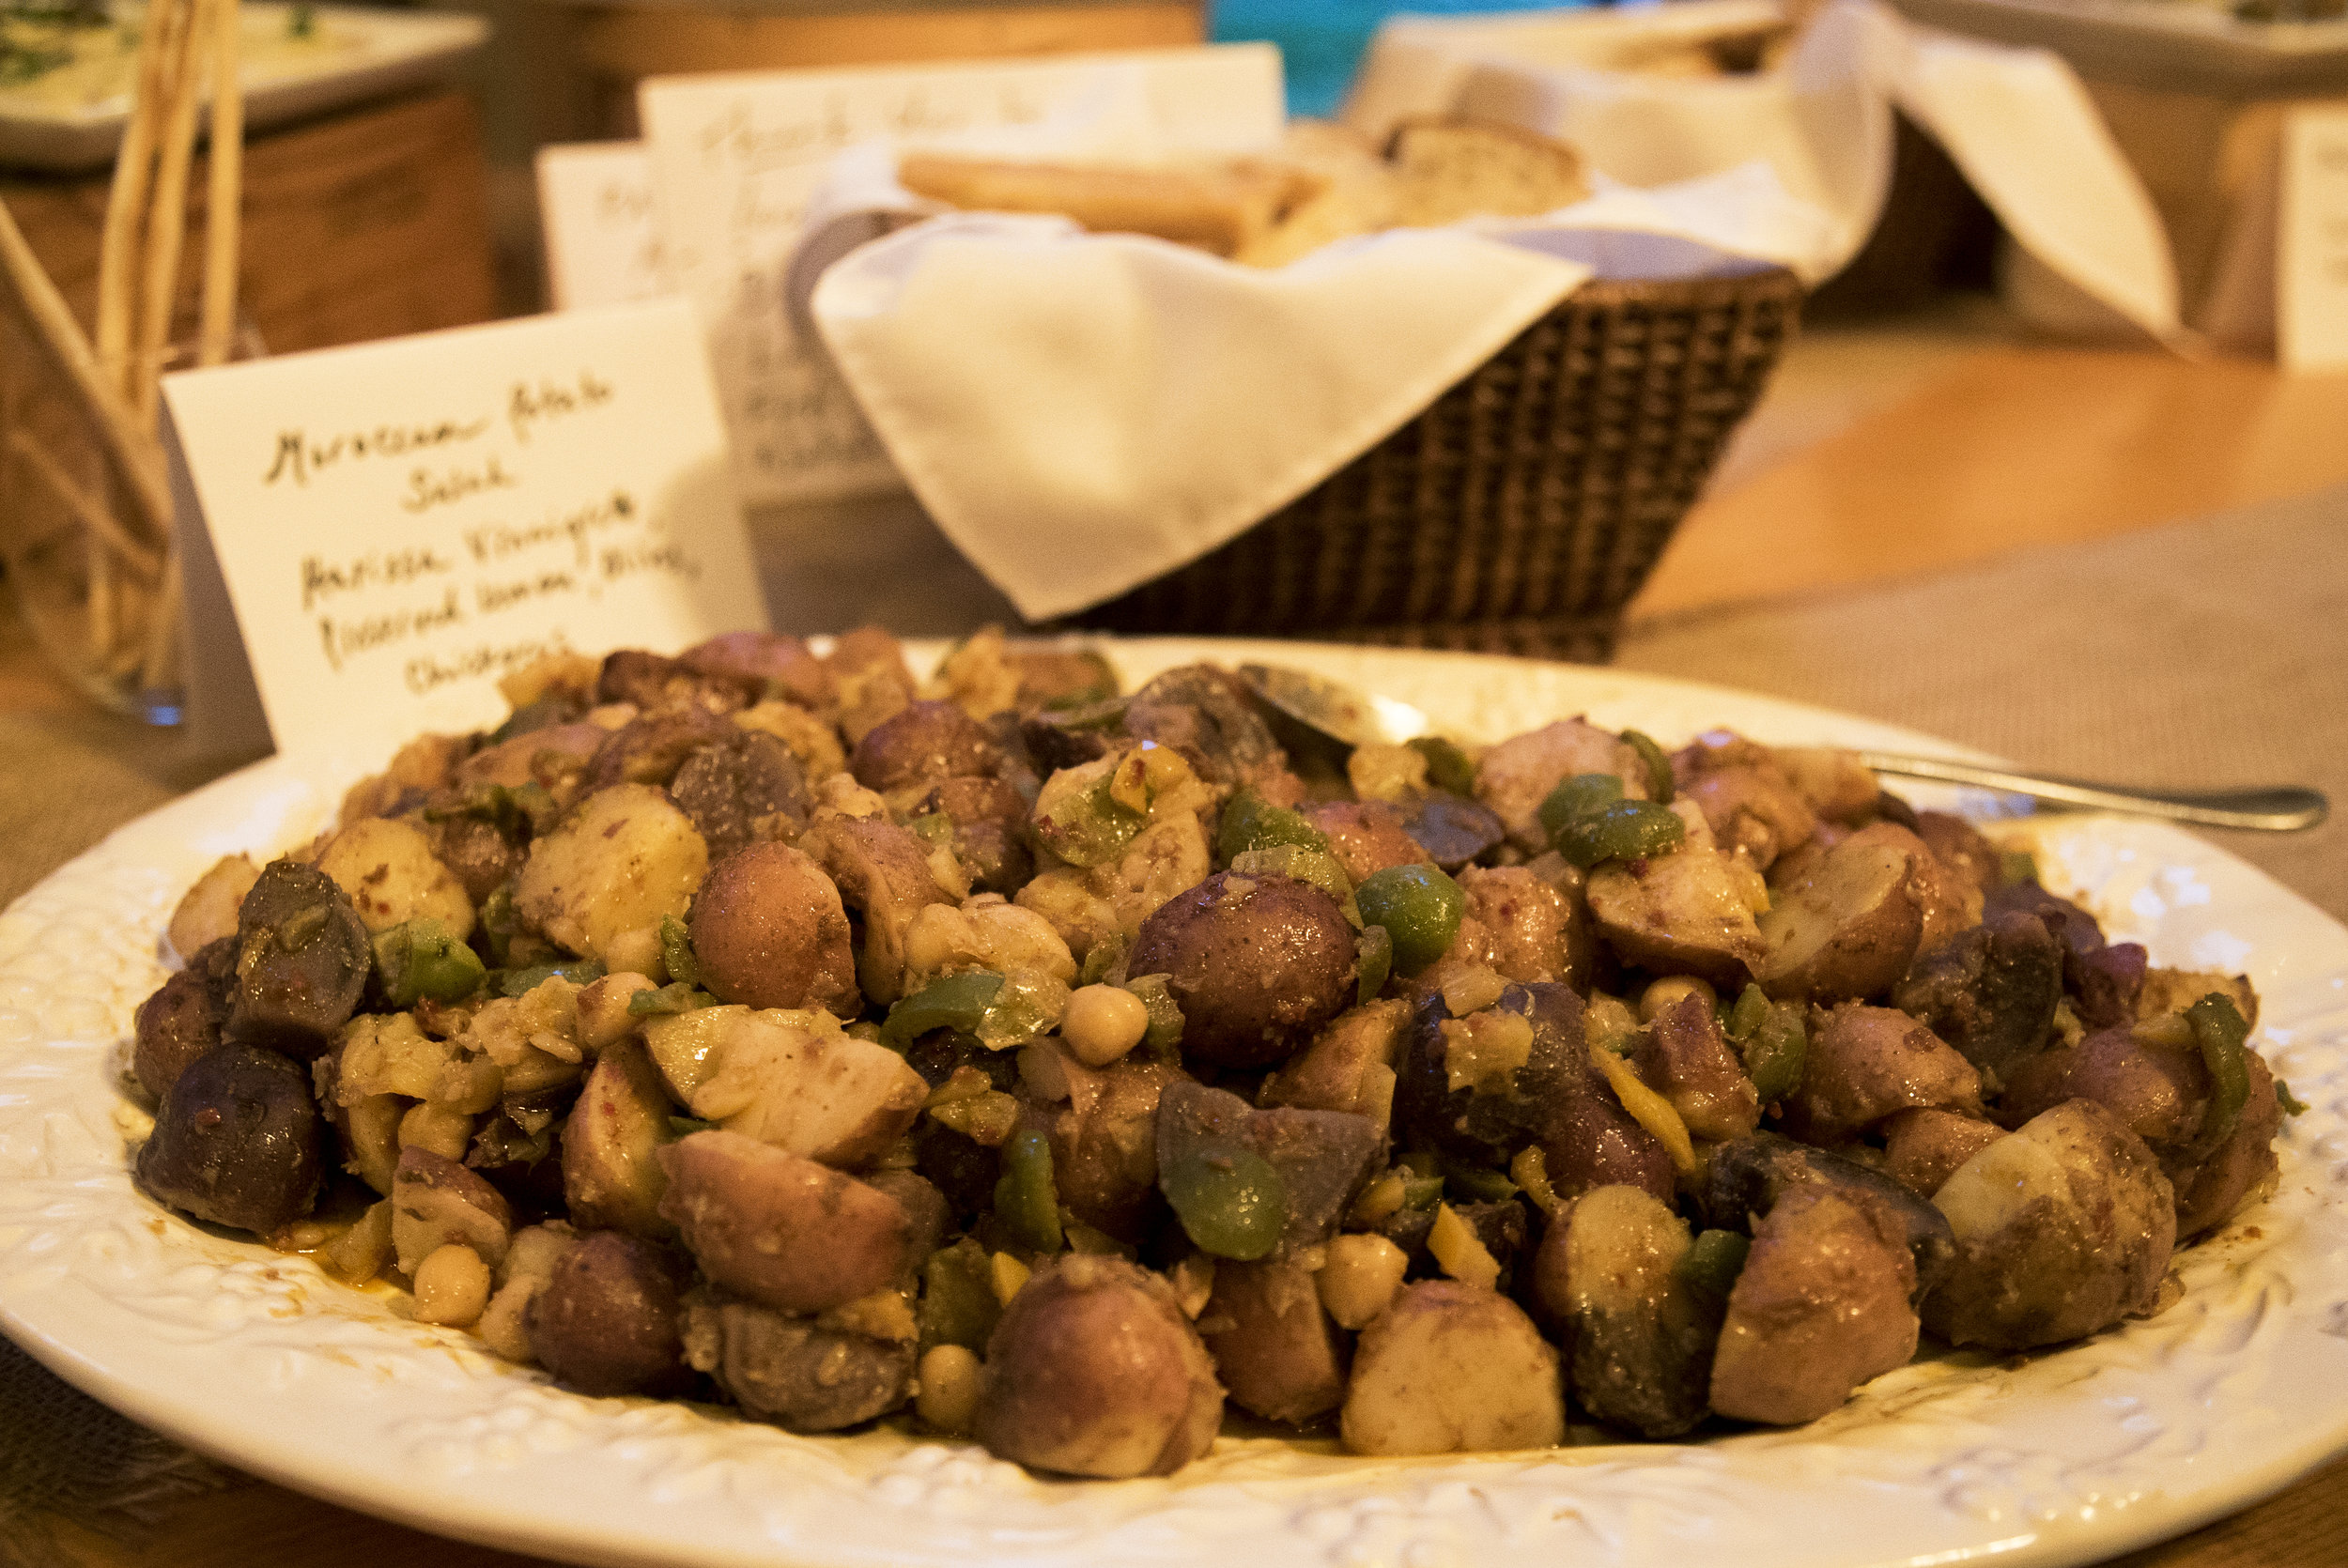 Moroccan potato salad with harissa vinaigrette, green olives, chickpeas, preserved lemon, sumac, parsley